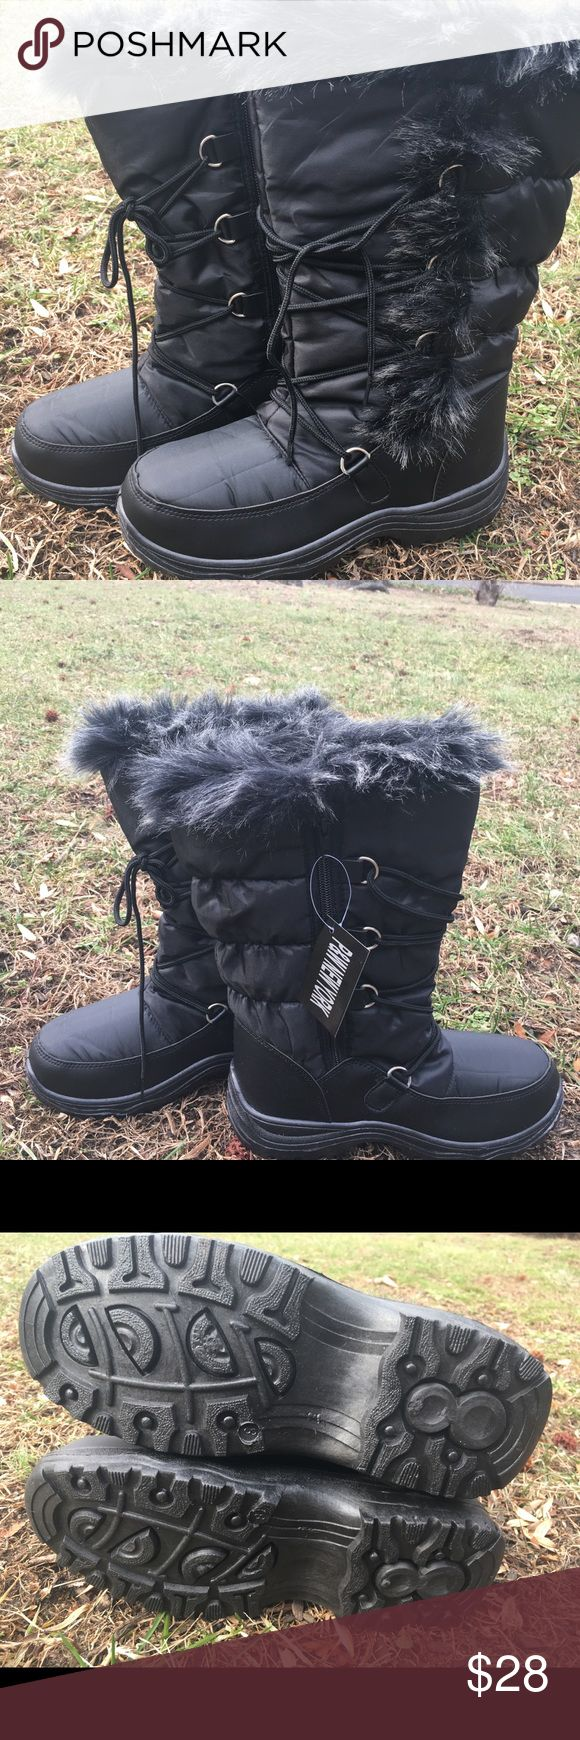 Black Lace-Up Winter Boots Never Worn Black Faux Fur Lace- Up Boots, New With Tags, Water-Resistant Shoes Winter & Rain Boots